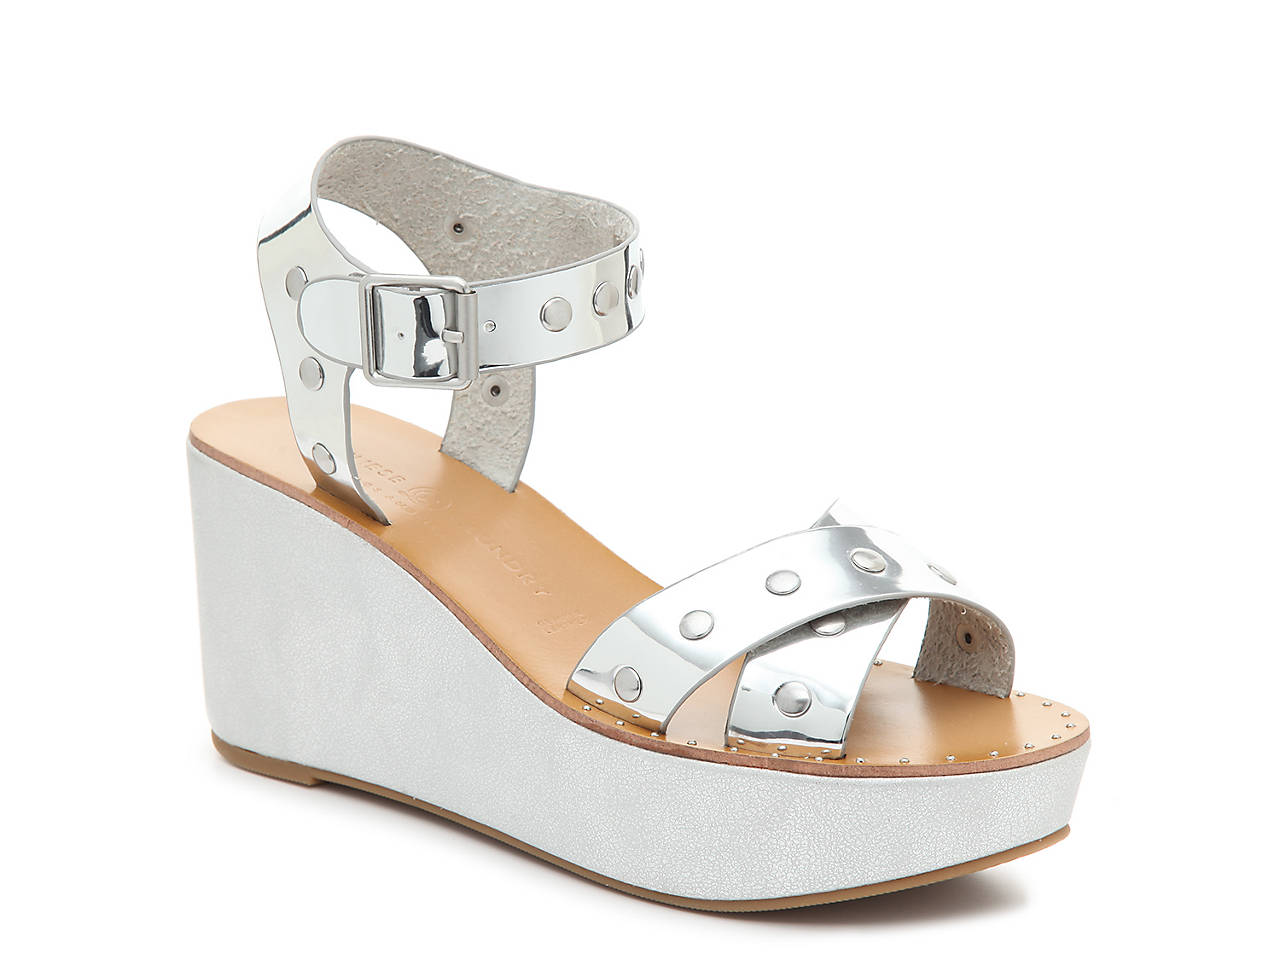 331cf9685081 Chinese Laundry Ozzie Wedge Sandal Women s Shoes